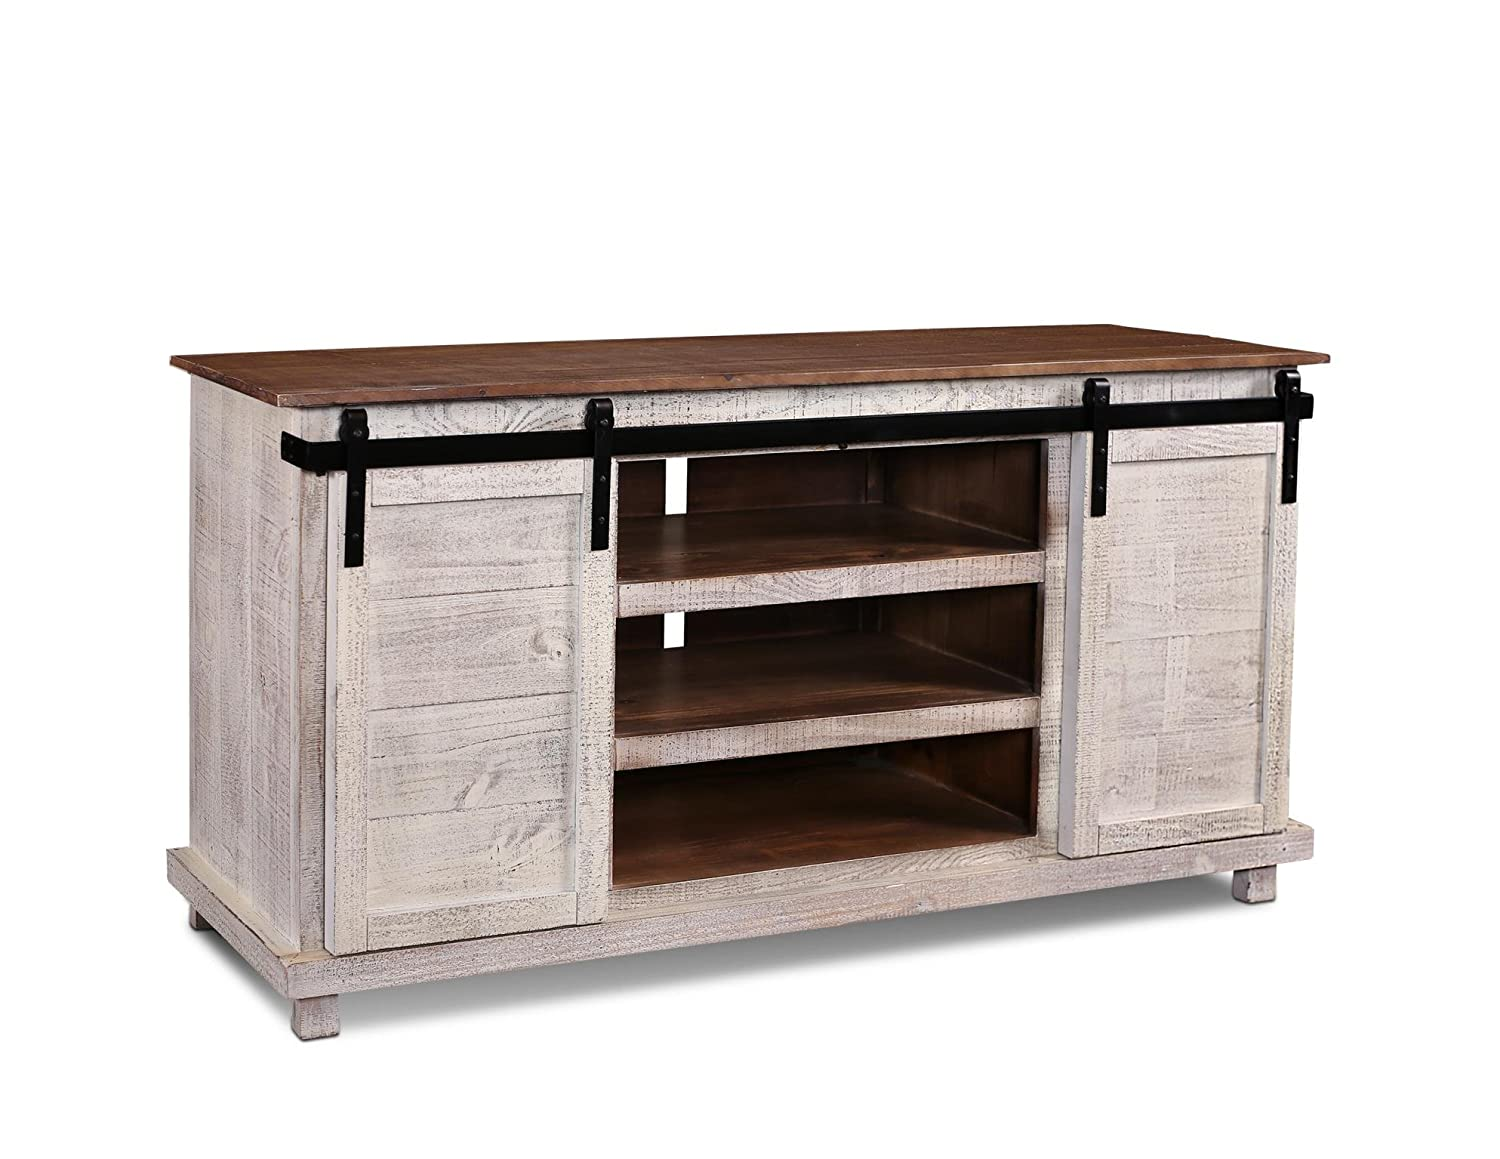 stand door greenview sliding door distressed white tv stand 60 inch crafters u0026. Black Bedroom Furniture Sets. Home Design Ideas